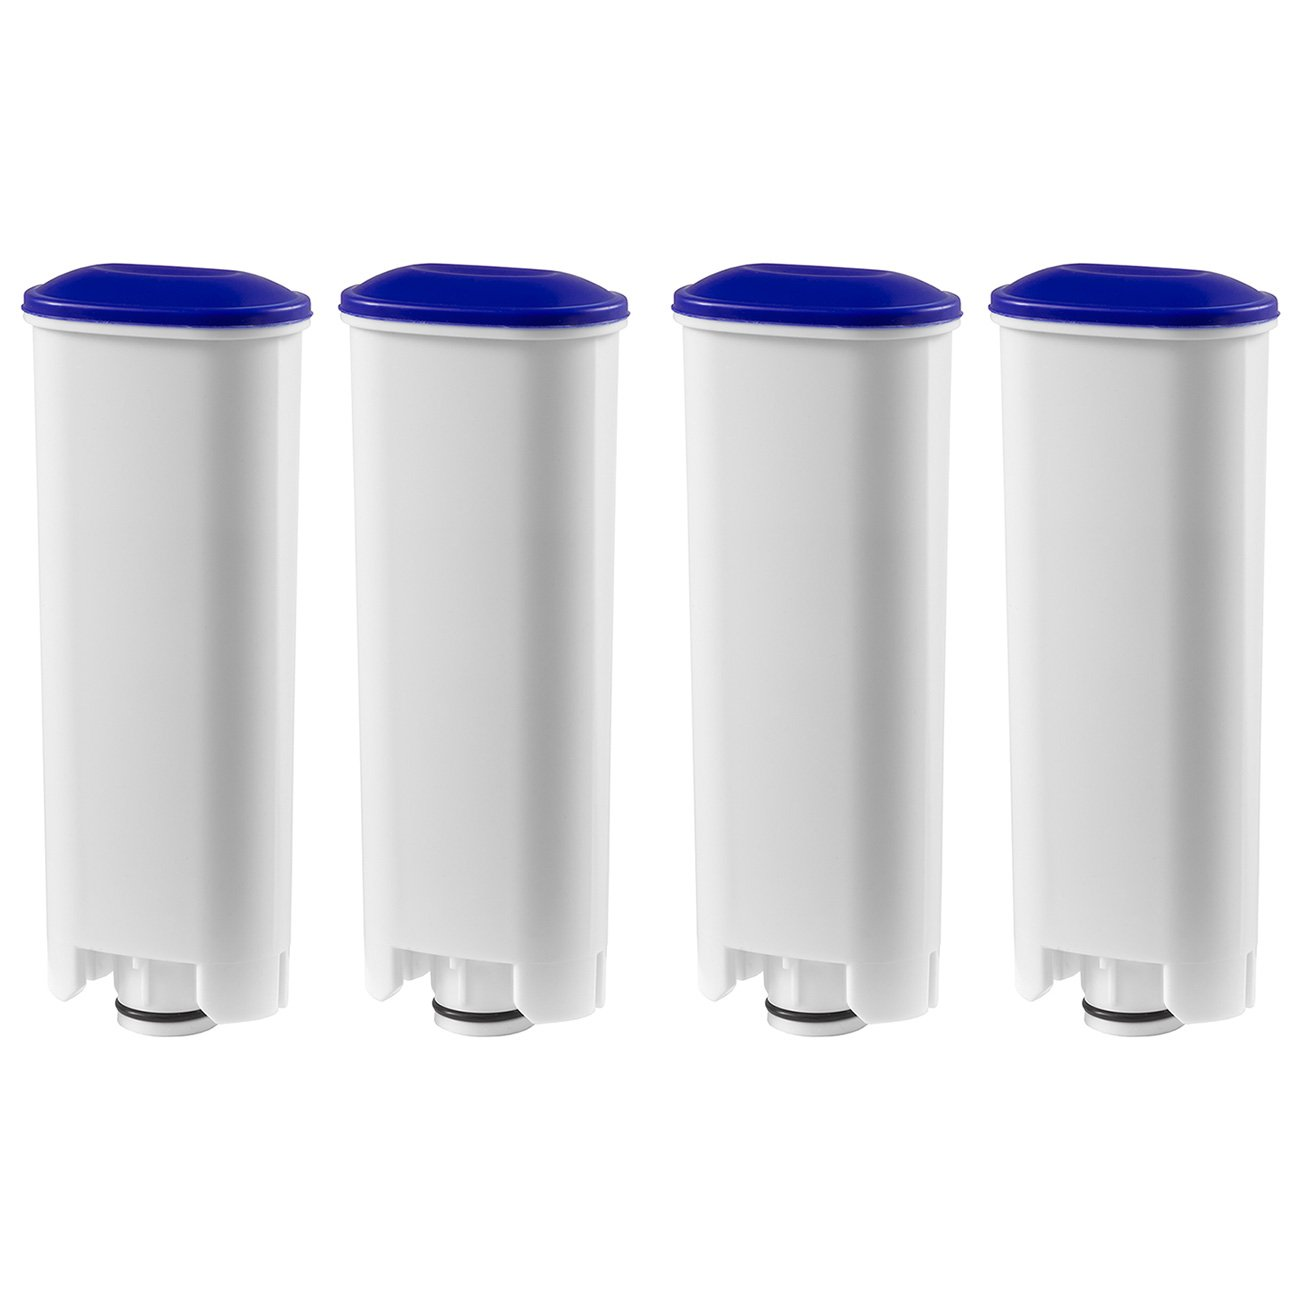 4x Water Filter Cartridges (pluggable) for DeLonghi coffee machines